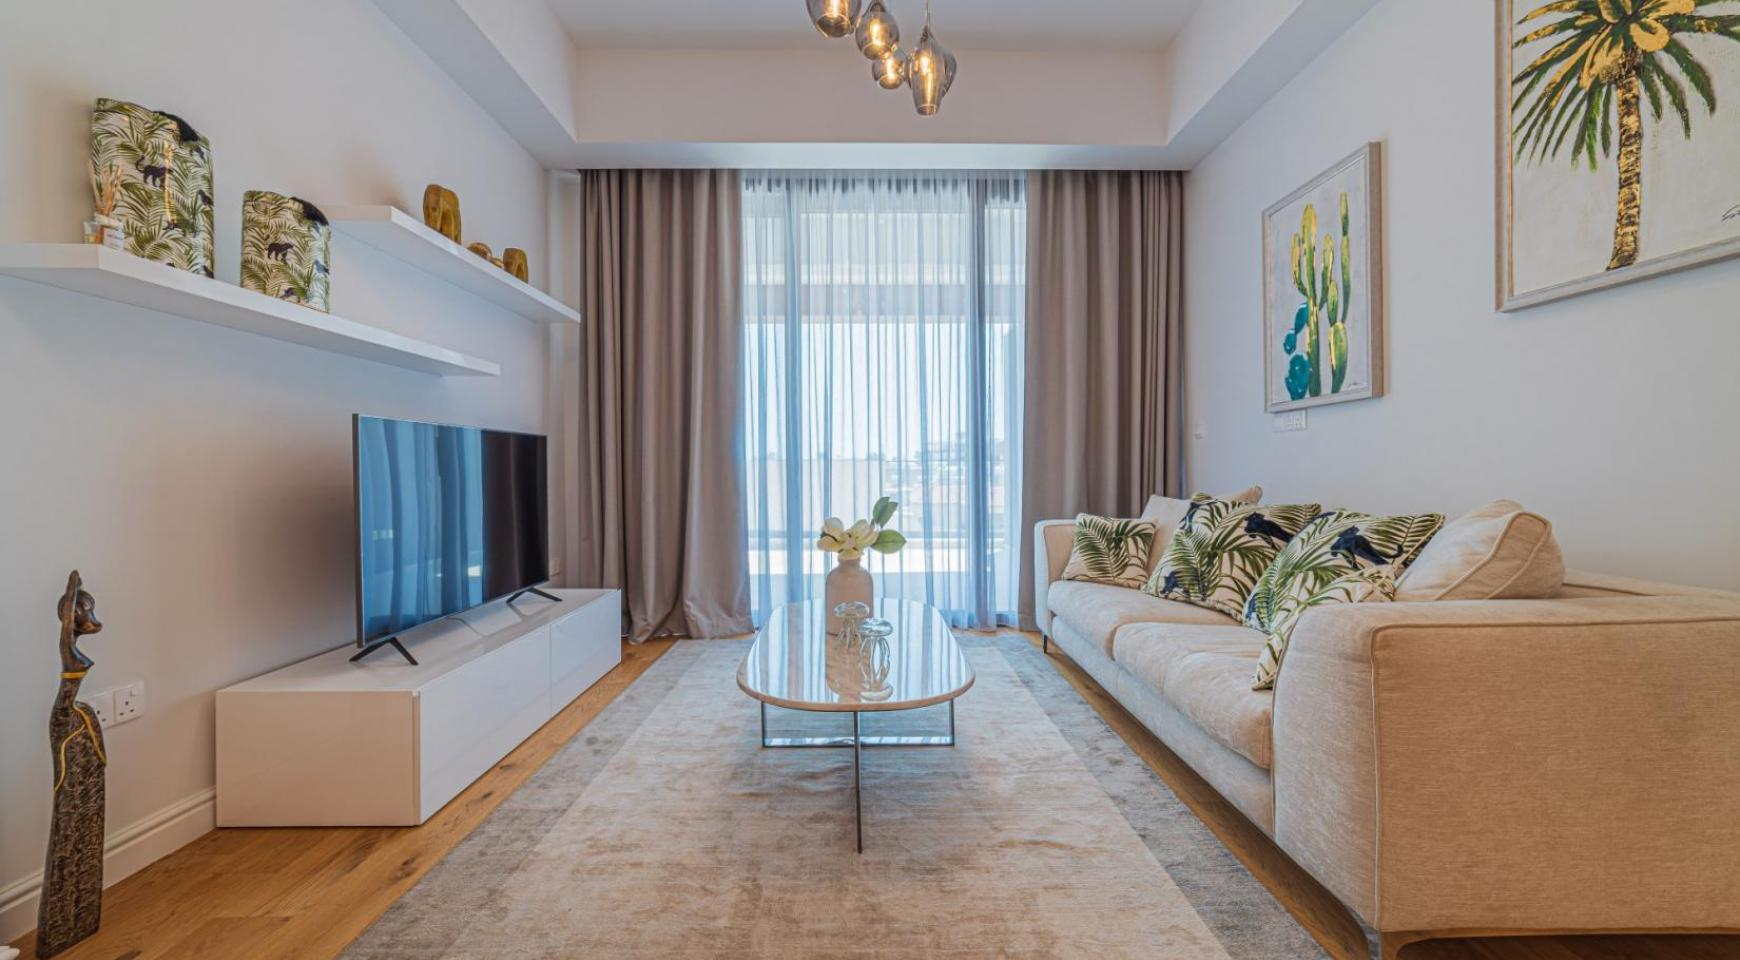 Hortensia Residence, Apt. 202. 2 Bedroom Apartment within a New Complex near the Sea  - 48